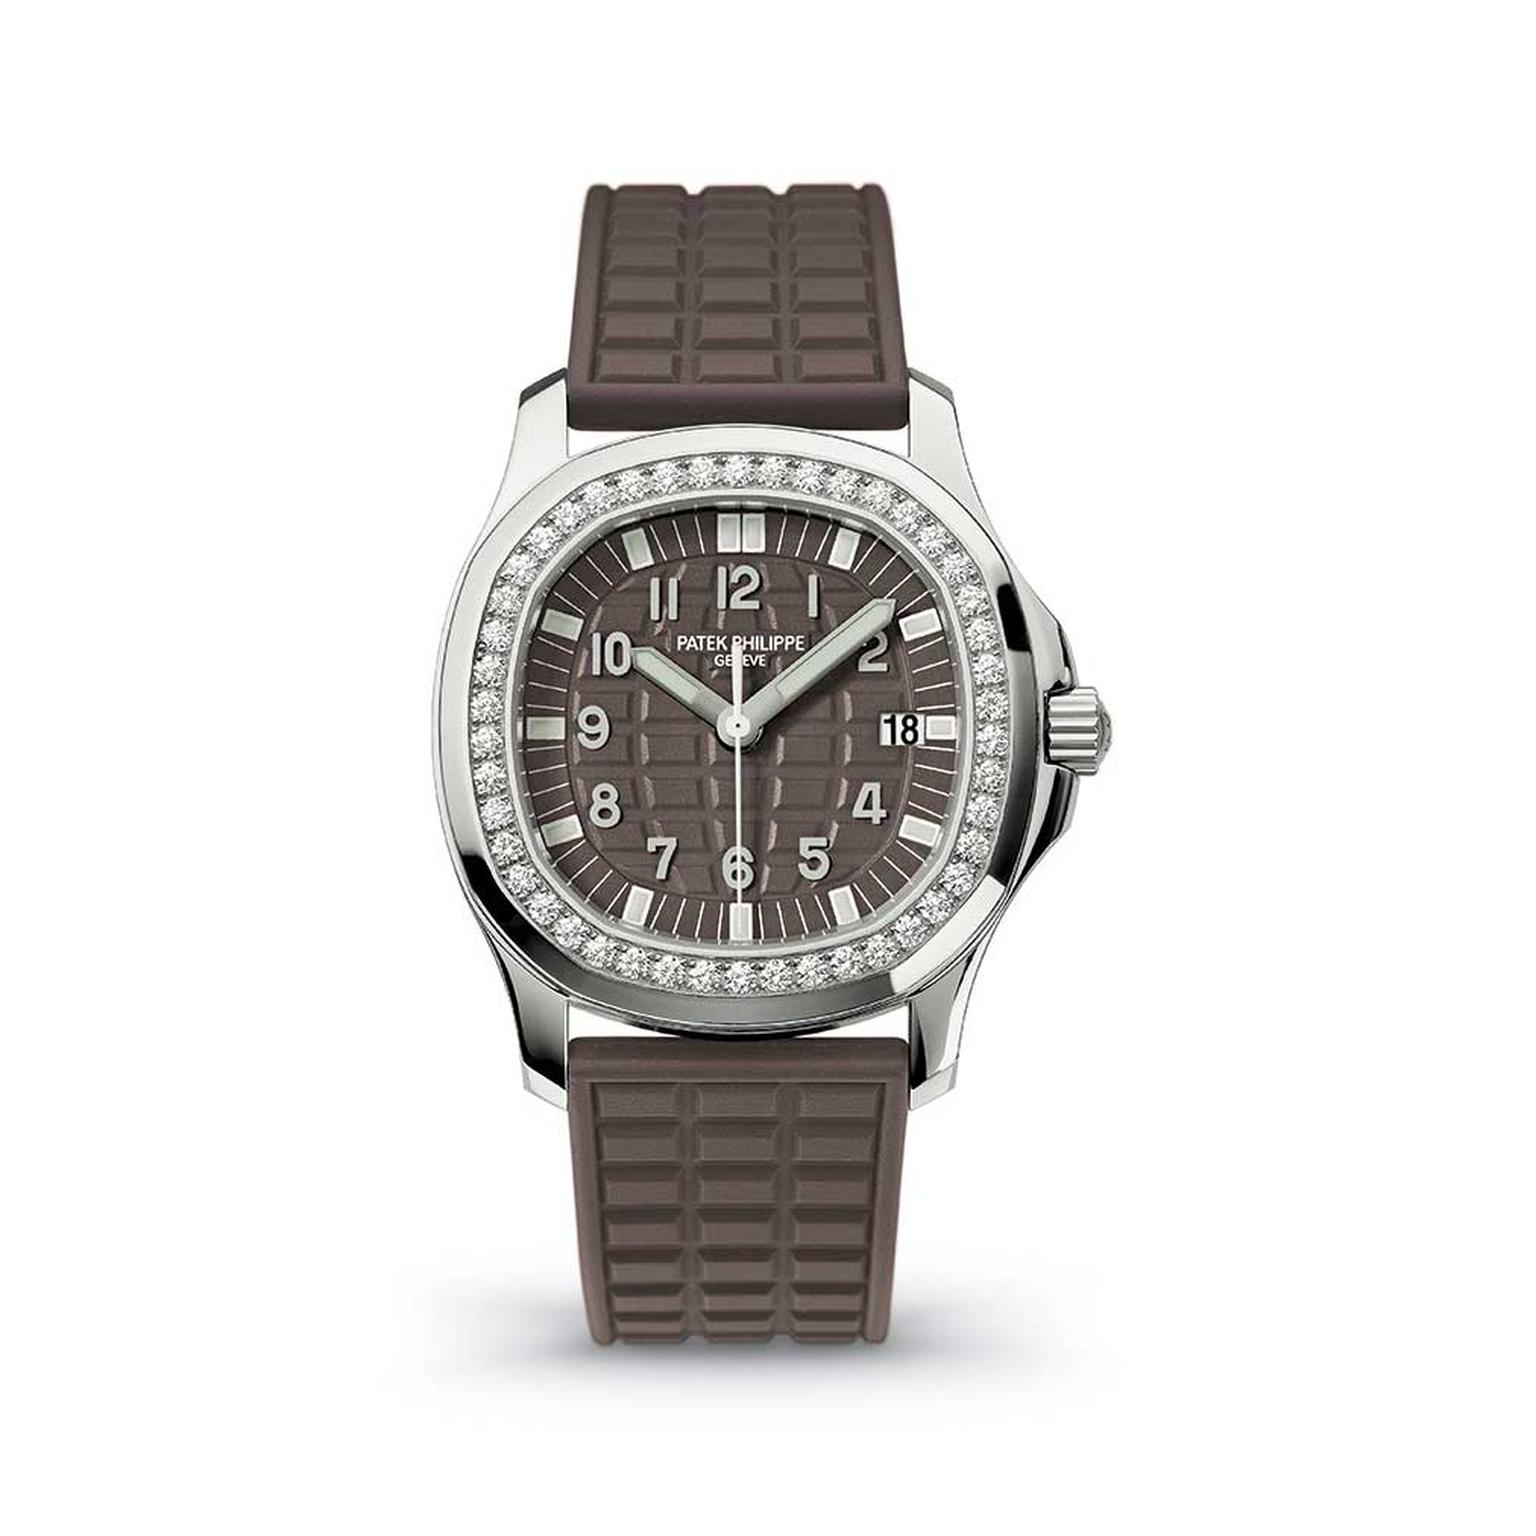 Patek Philippe Aquanaut stainless steel